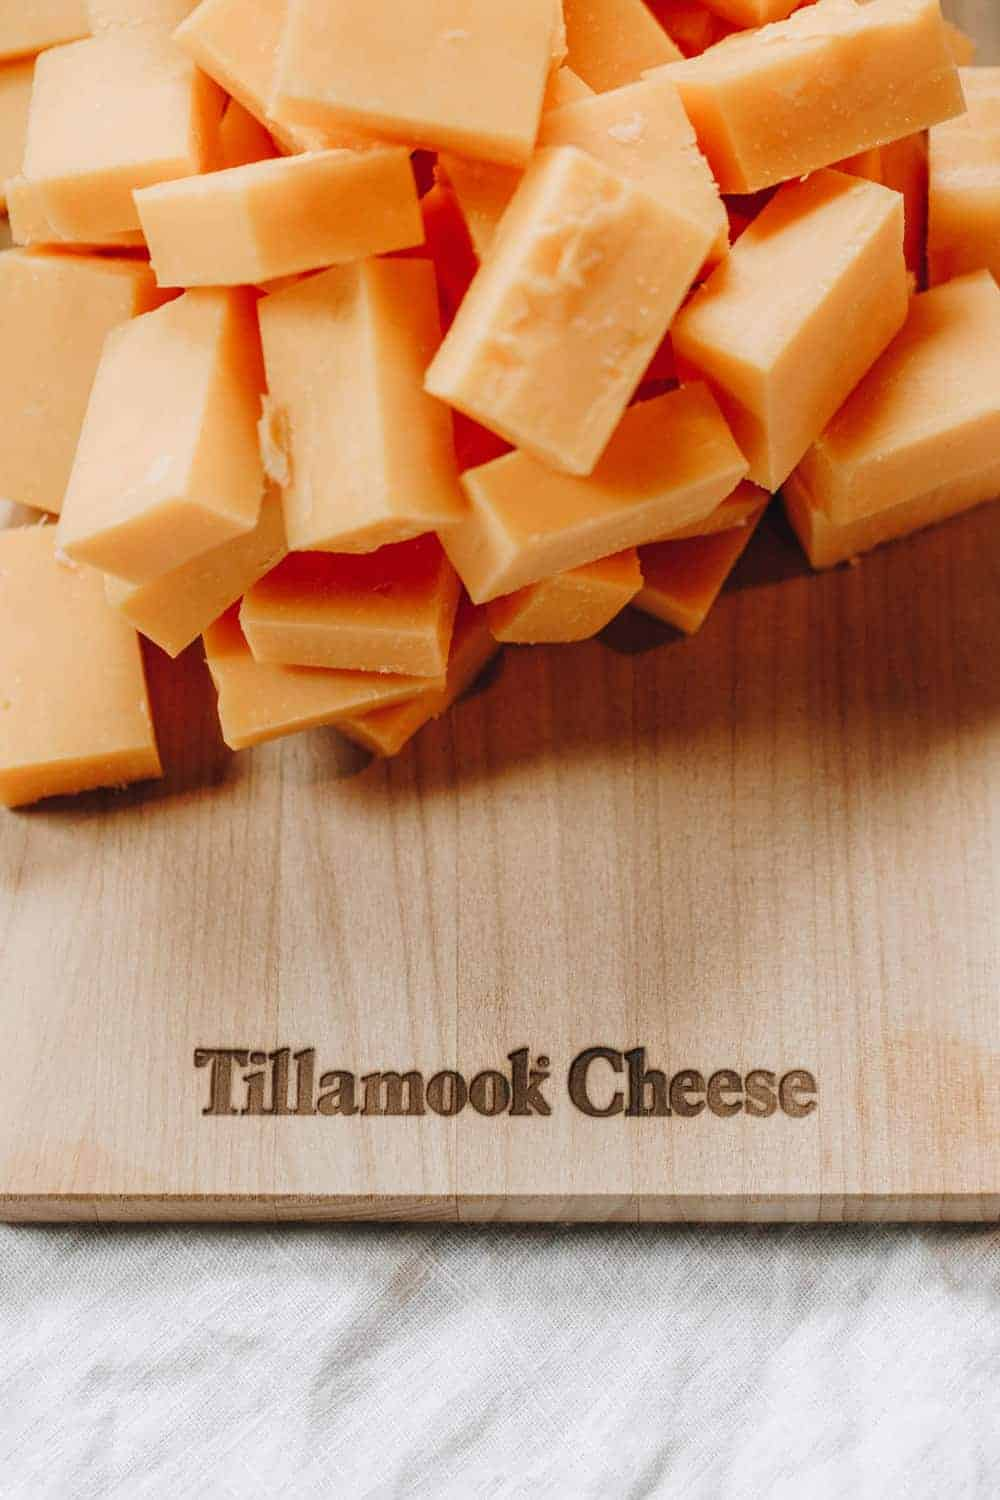 Tillamook Cheese on cutting board